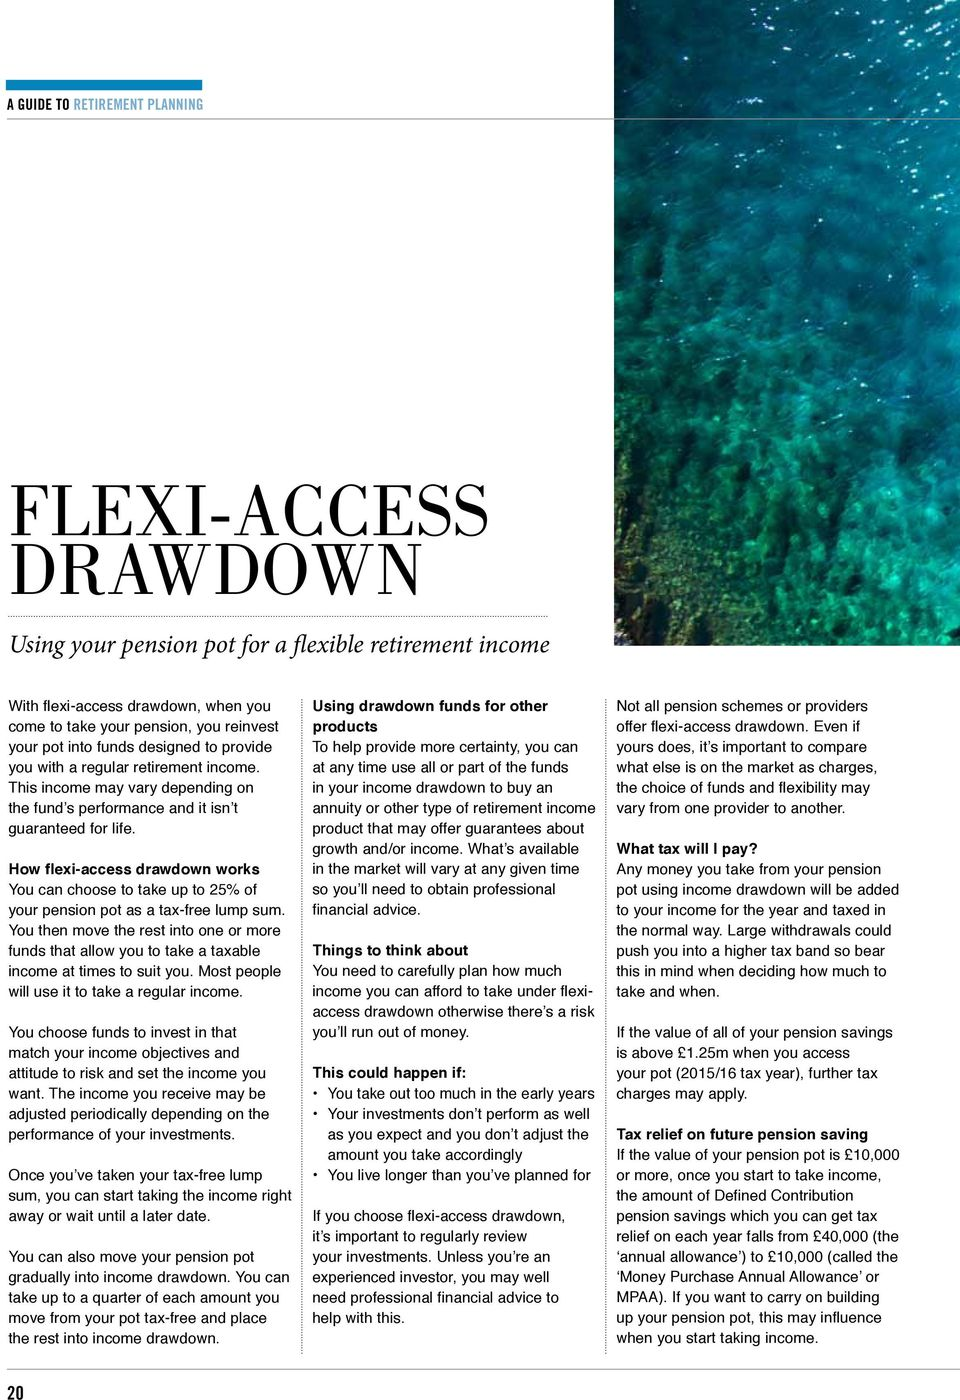 How flexi-access drawdown works You can choose to take up to 25% of your pension pot as a tax-free lump sum.